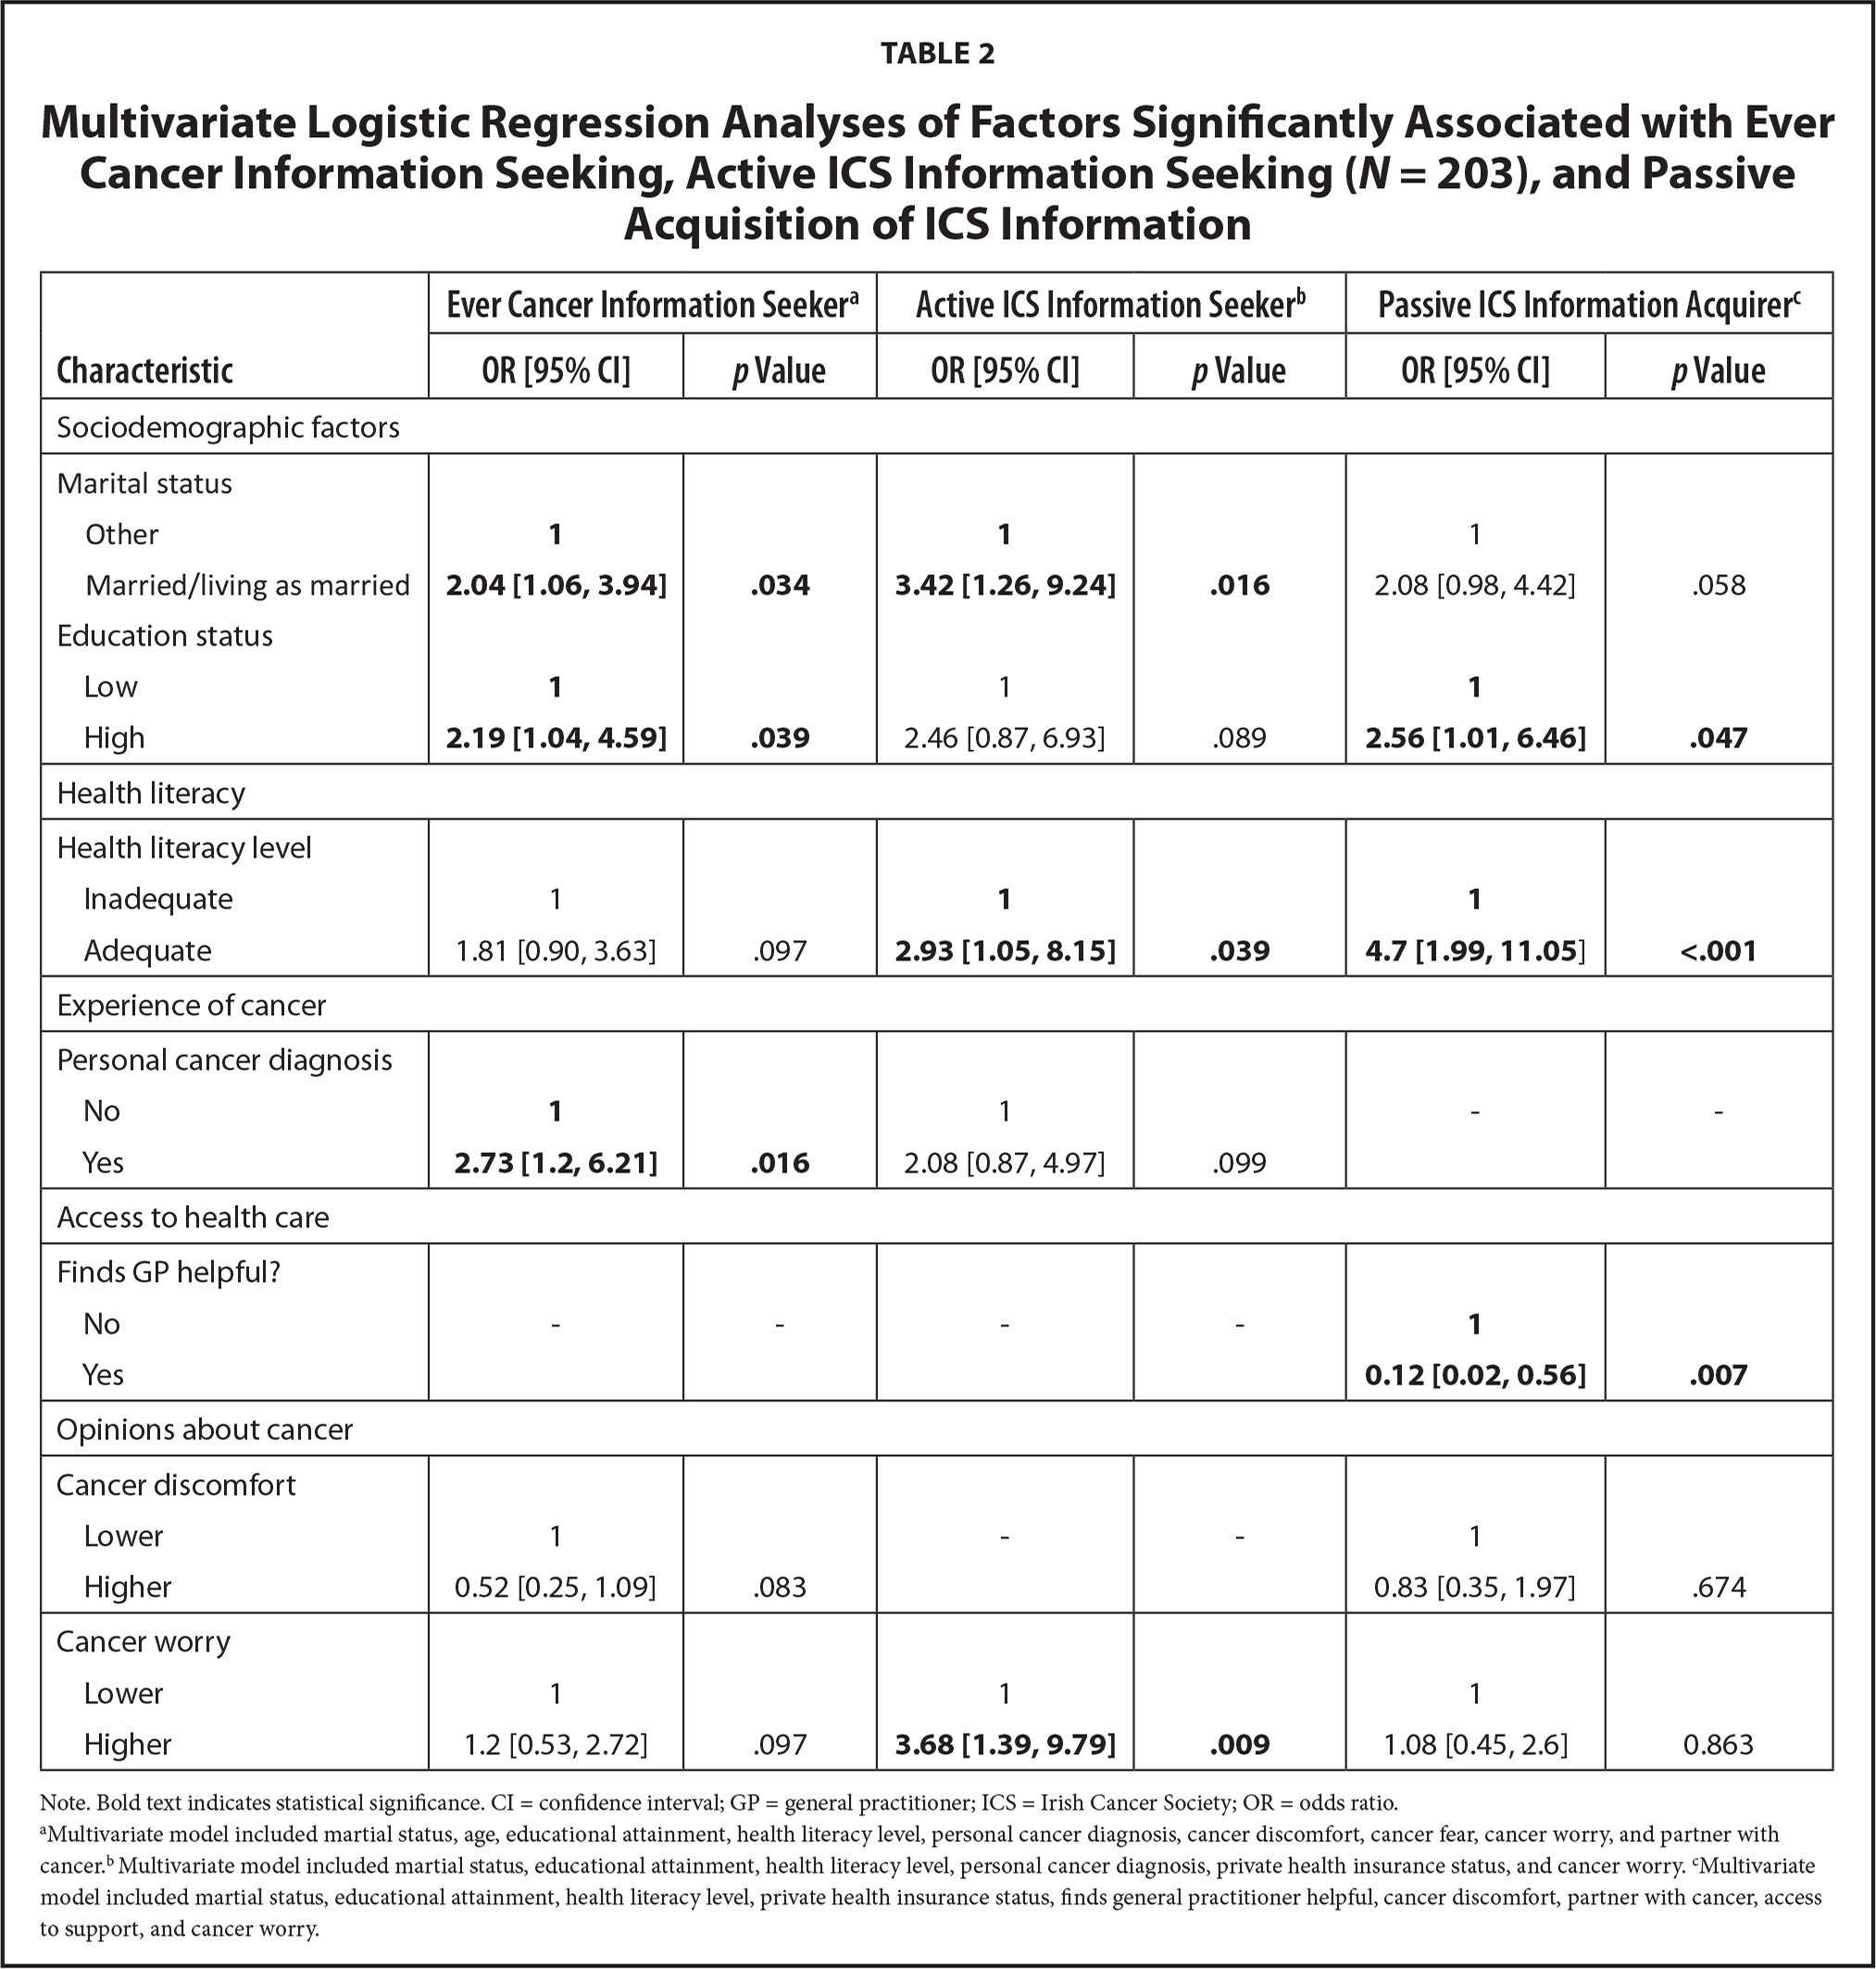 Multivariate Logistic Regression Analyses of Factors Significantly Associated with Ever Cancer Information Seeking, Active ICS Information Seeking (N = 203), and Passive Acquisition of ICS Information